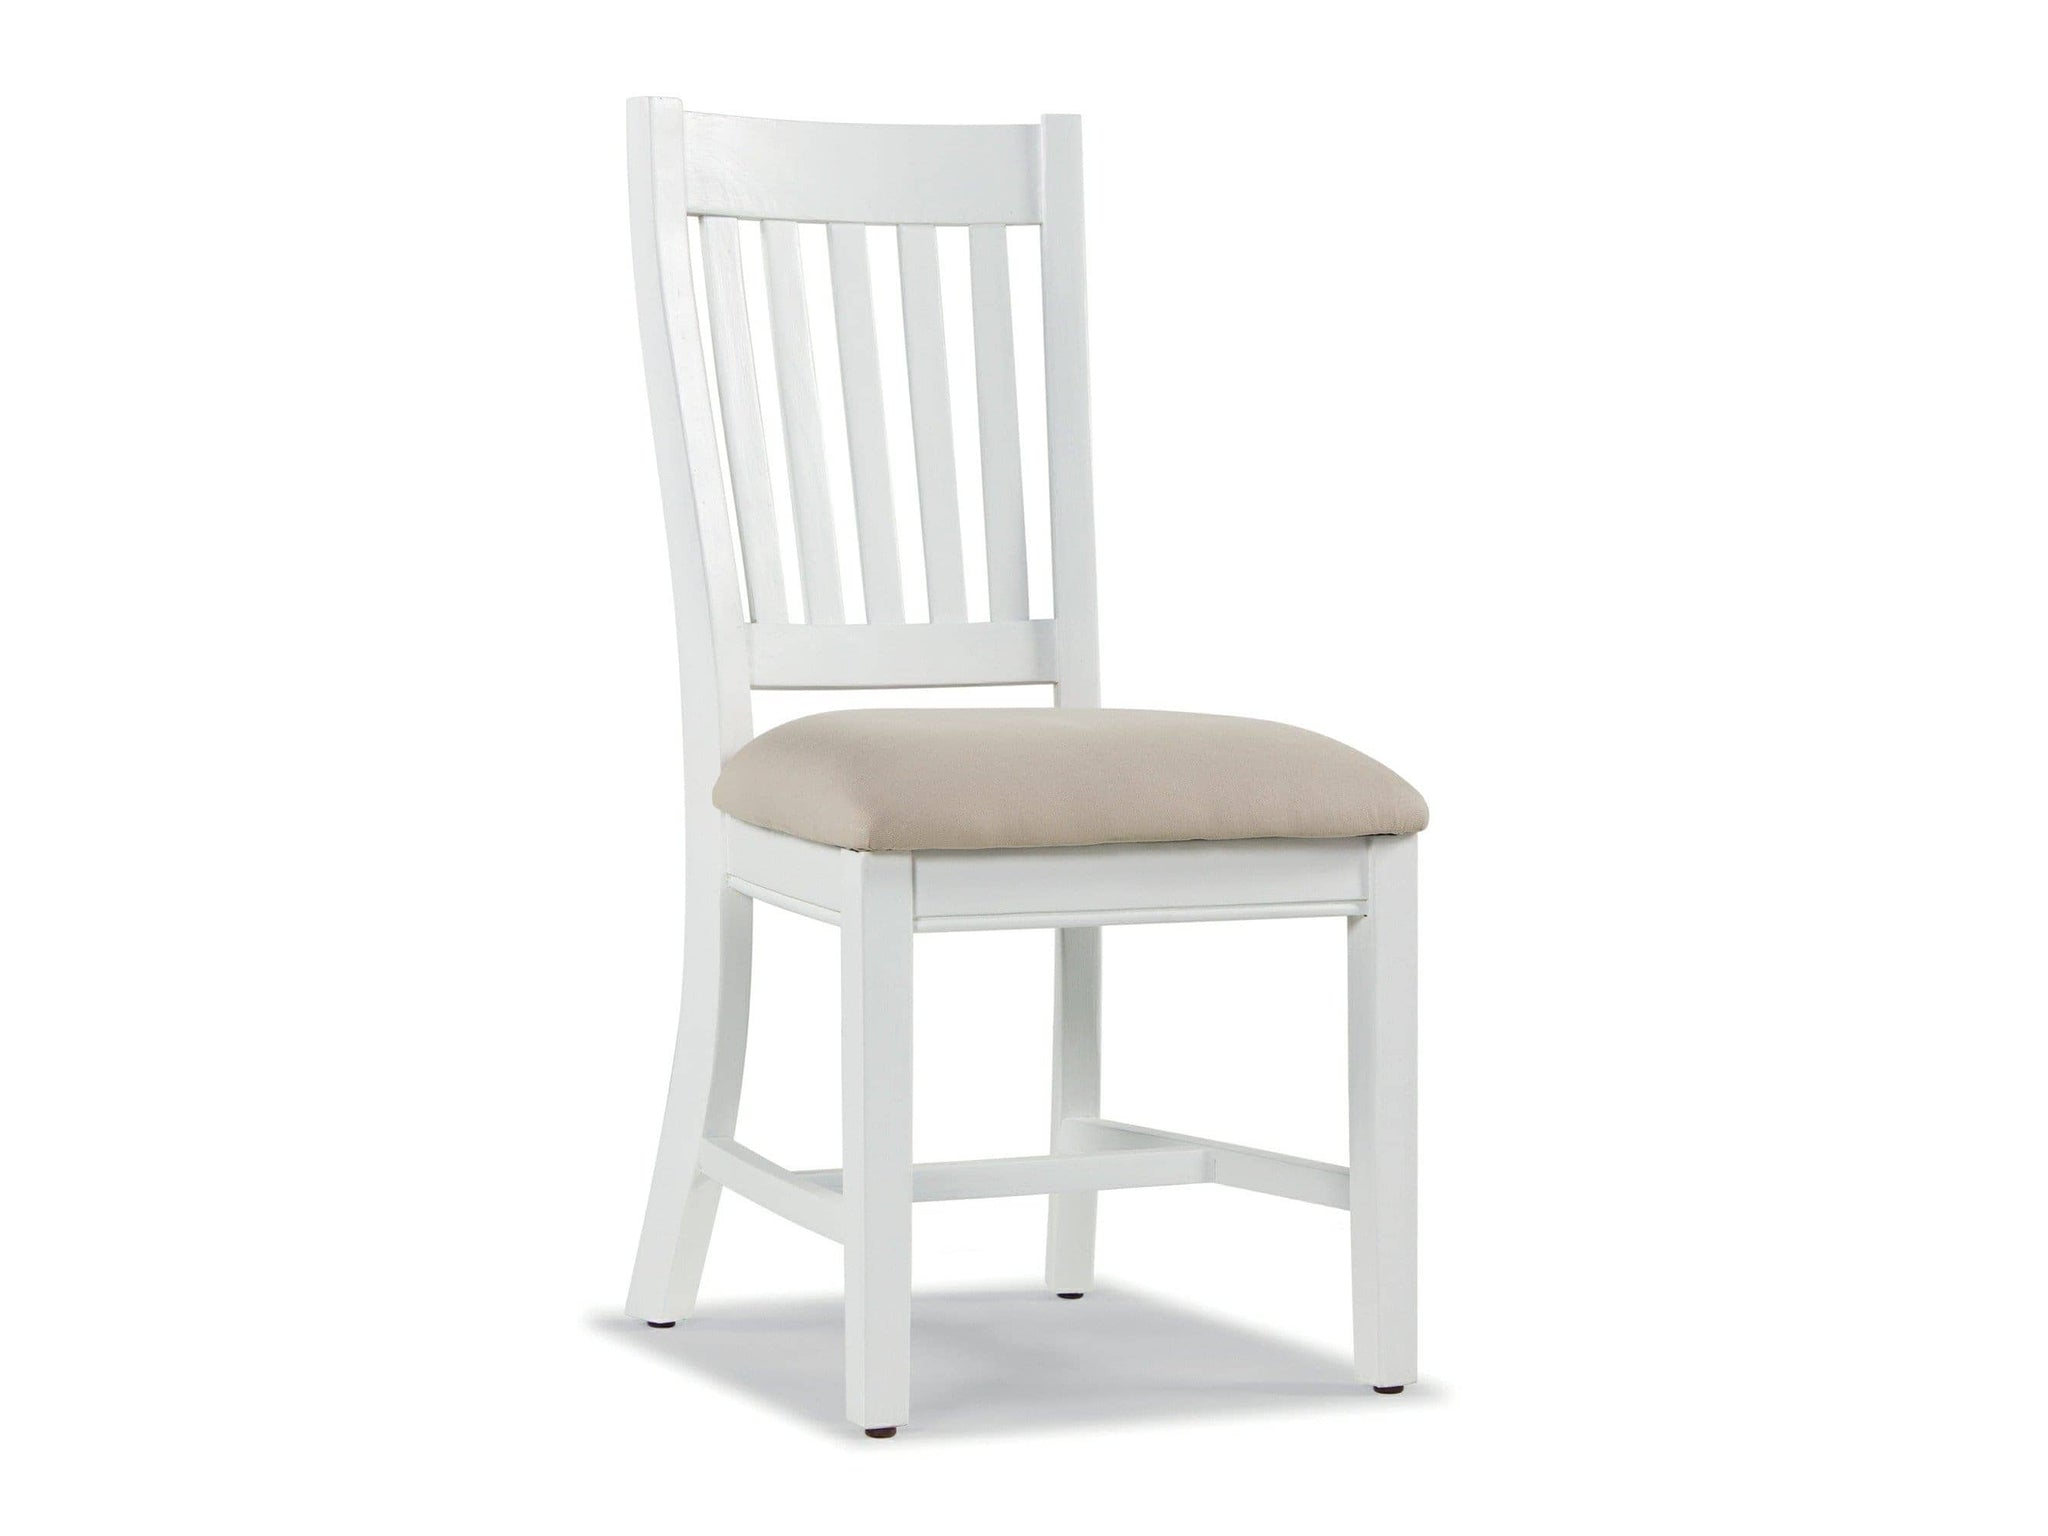 Farmhouse Style White Painted Dining Chairs Greenway Furniture